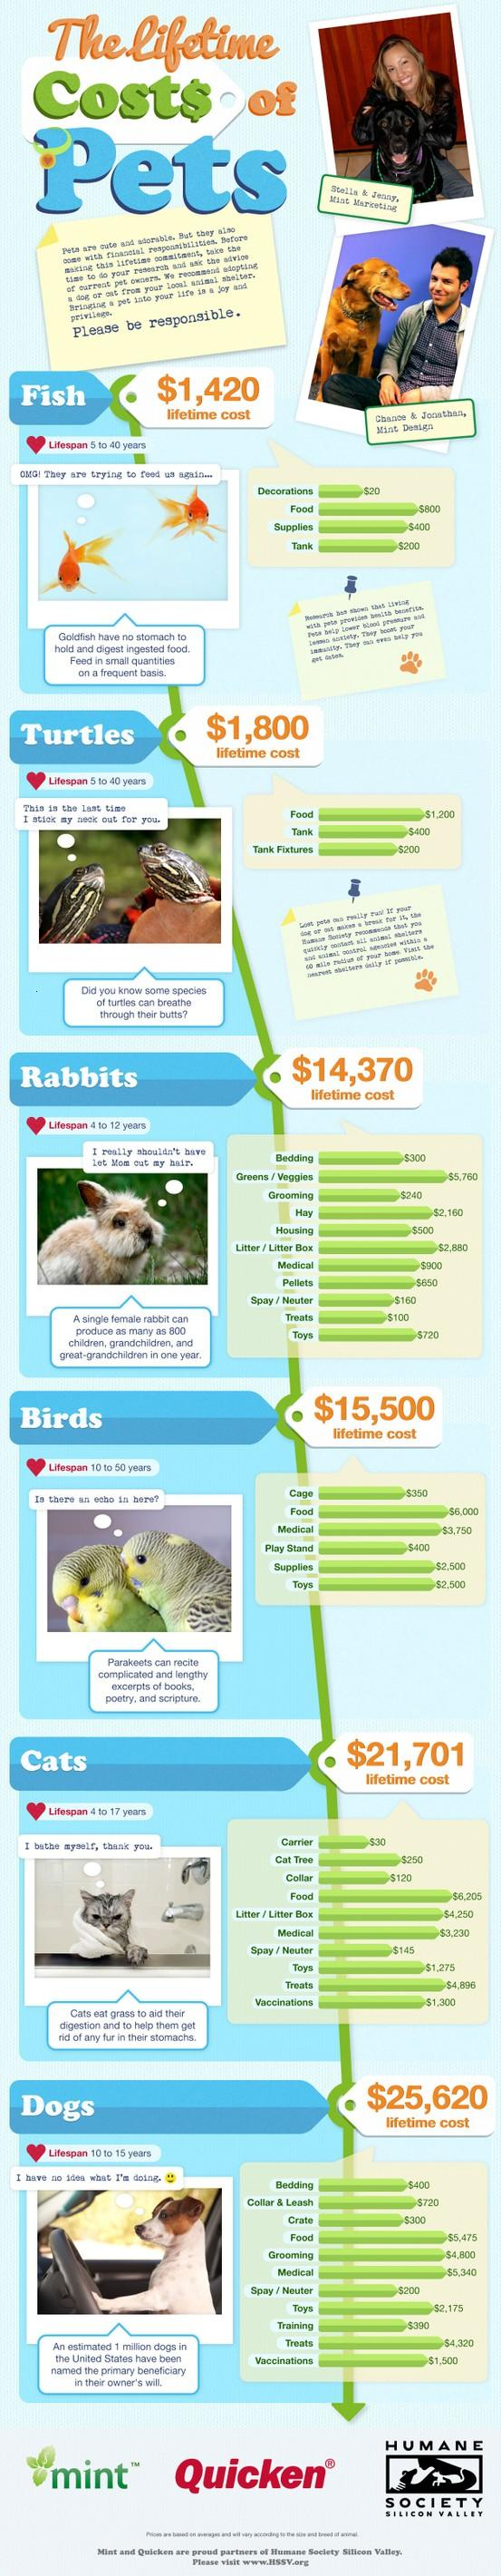 COST OF PETS, IF YOU'RE SMART YOU CAN AVOID SOME OF THESE